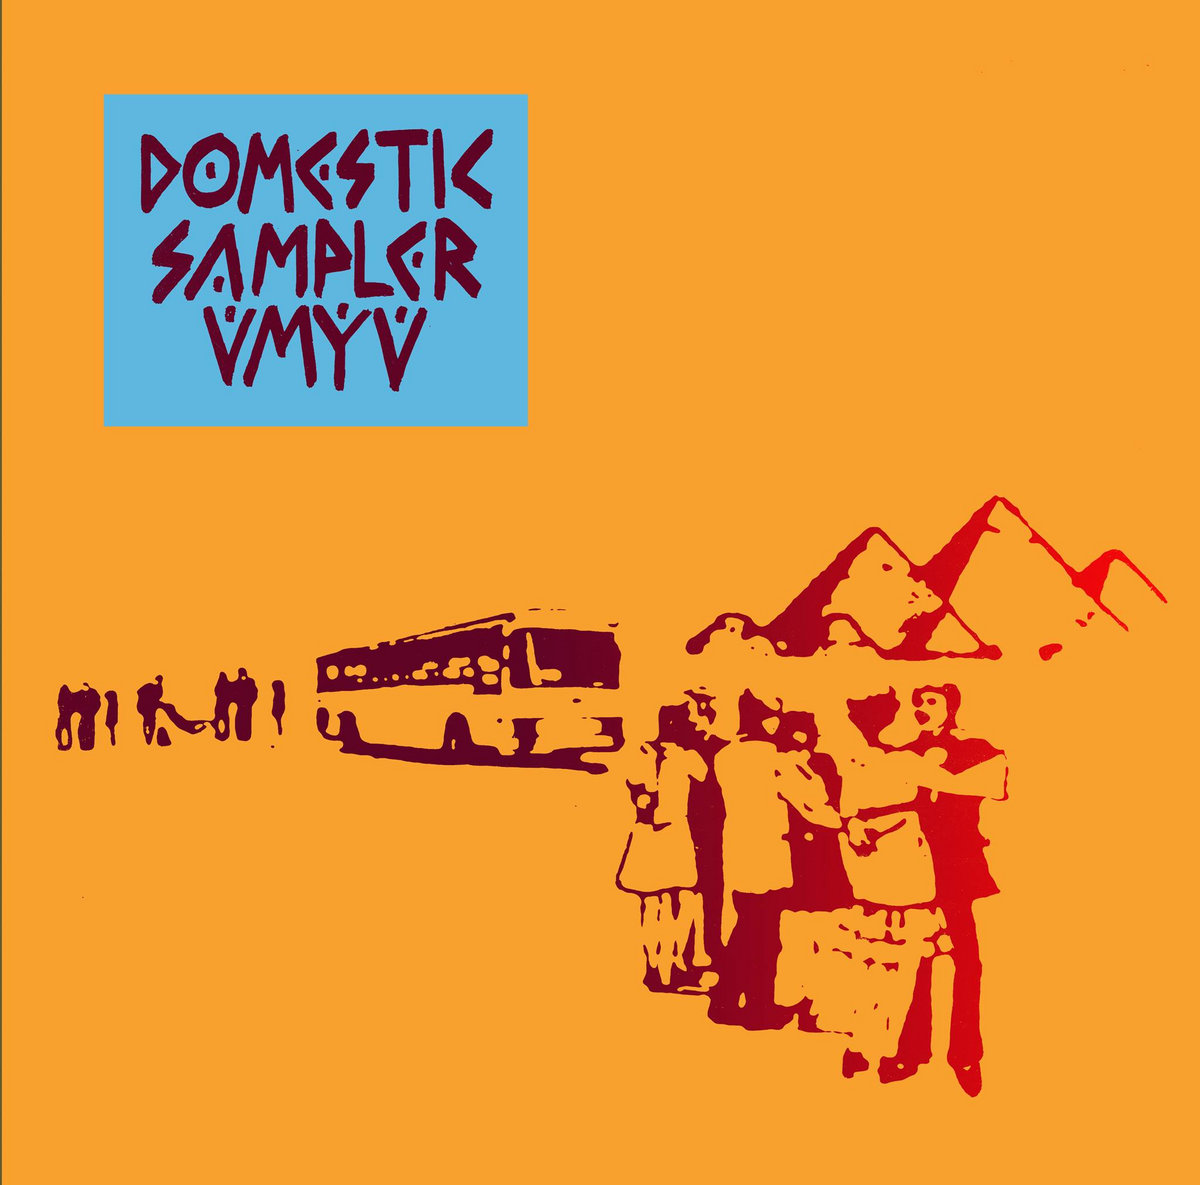 TRANS-2 - Domestic Sampler UMYU (Spanish-UK New Wave 1982 Reissue) A3818729189_10